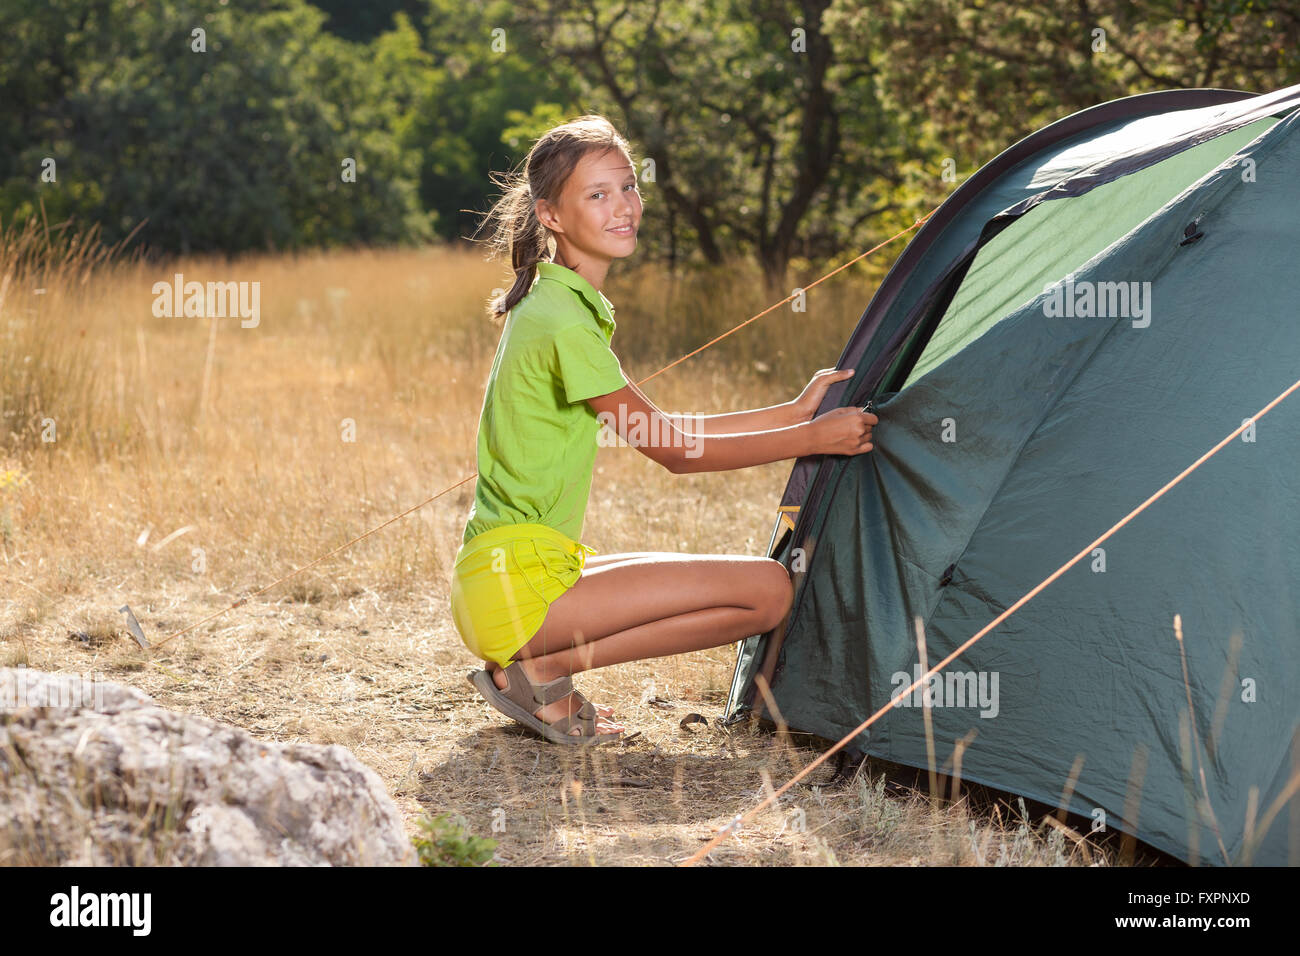 Smiling teenager girl setting a tent - Stock Image